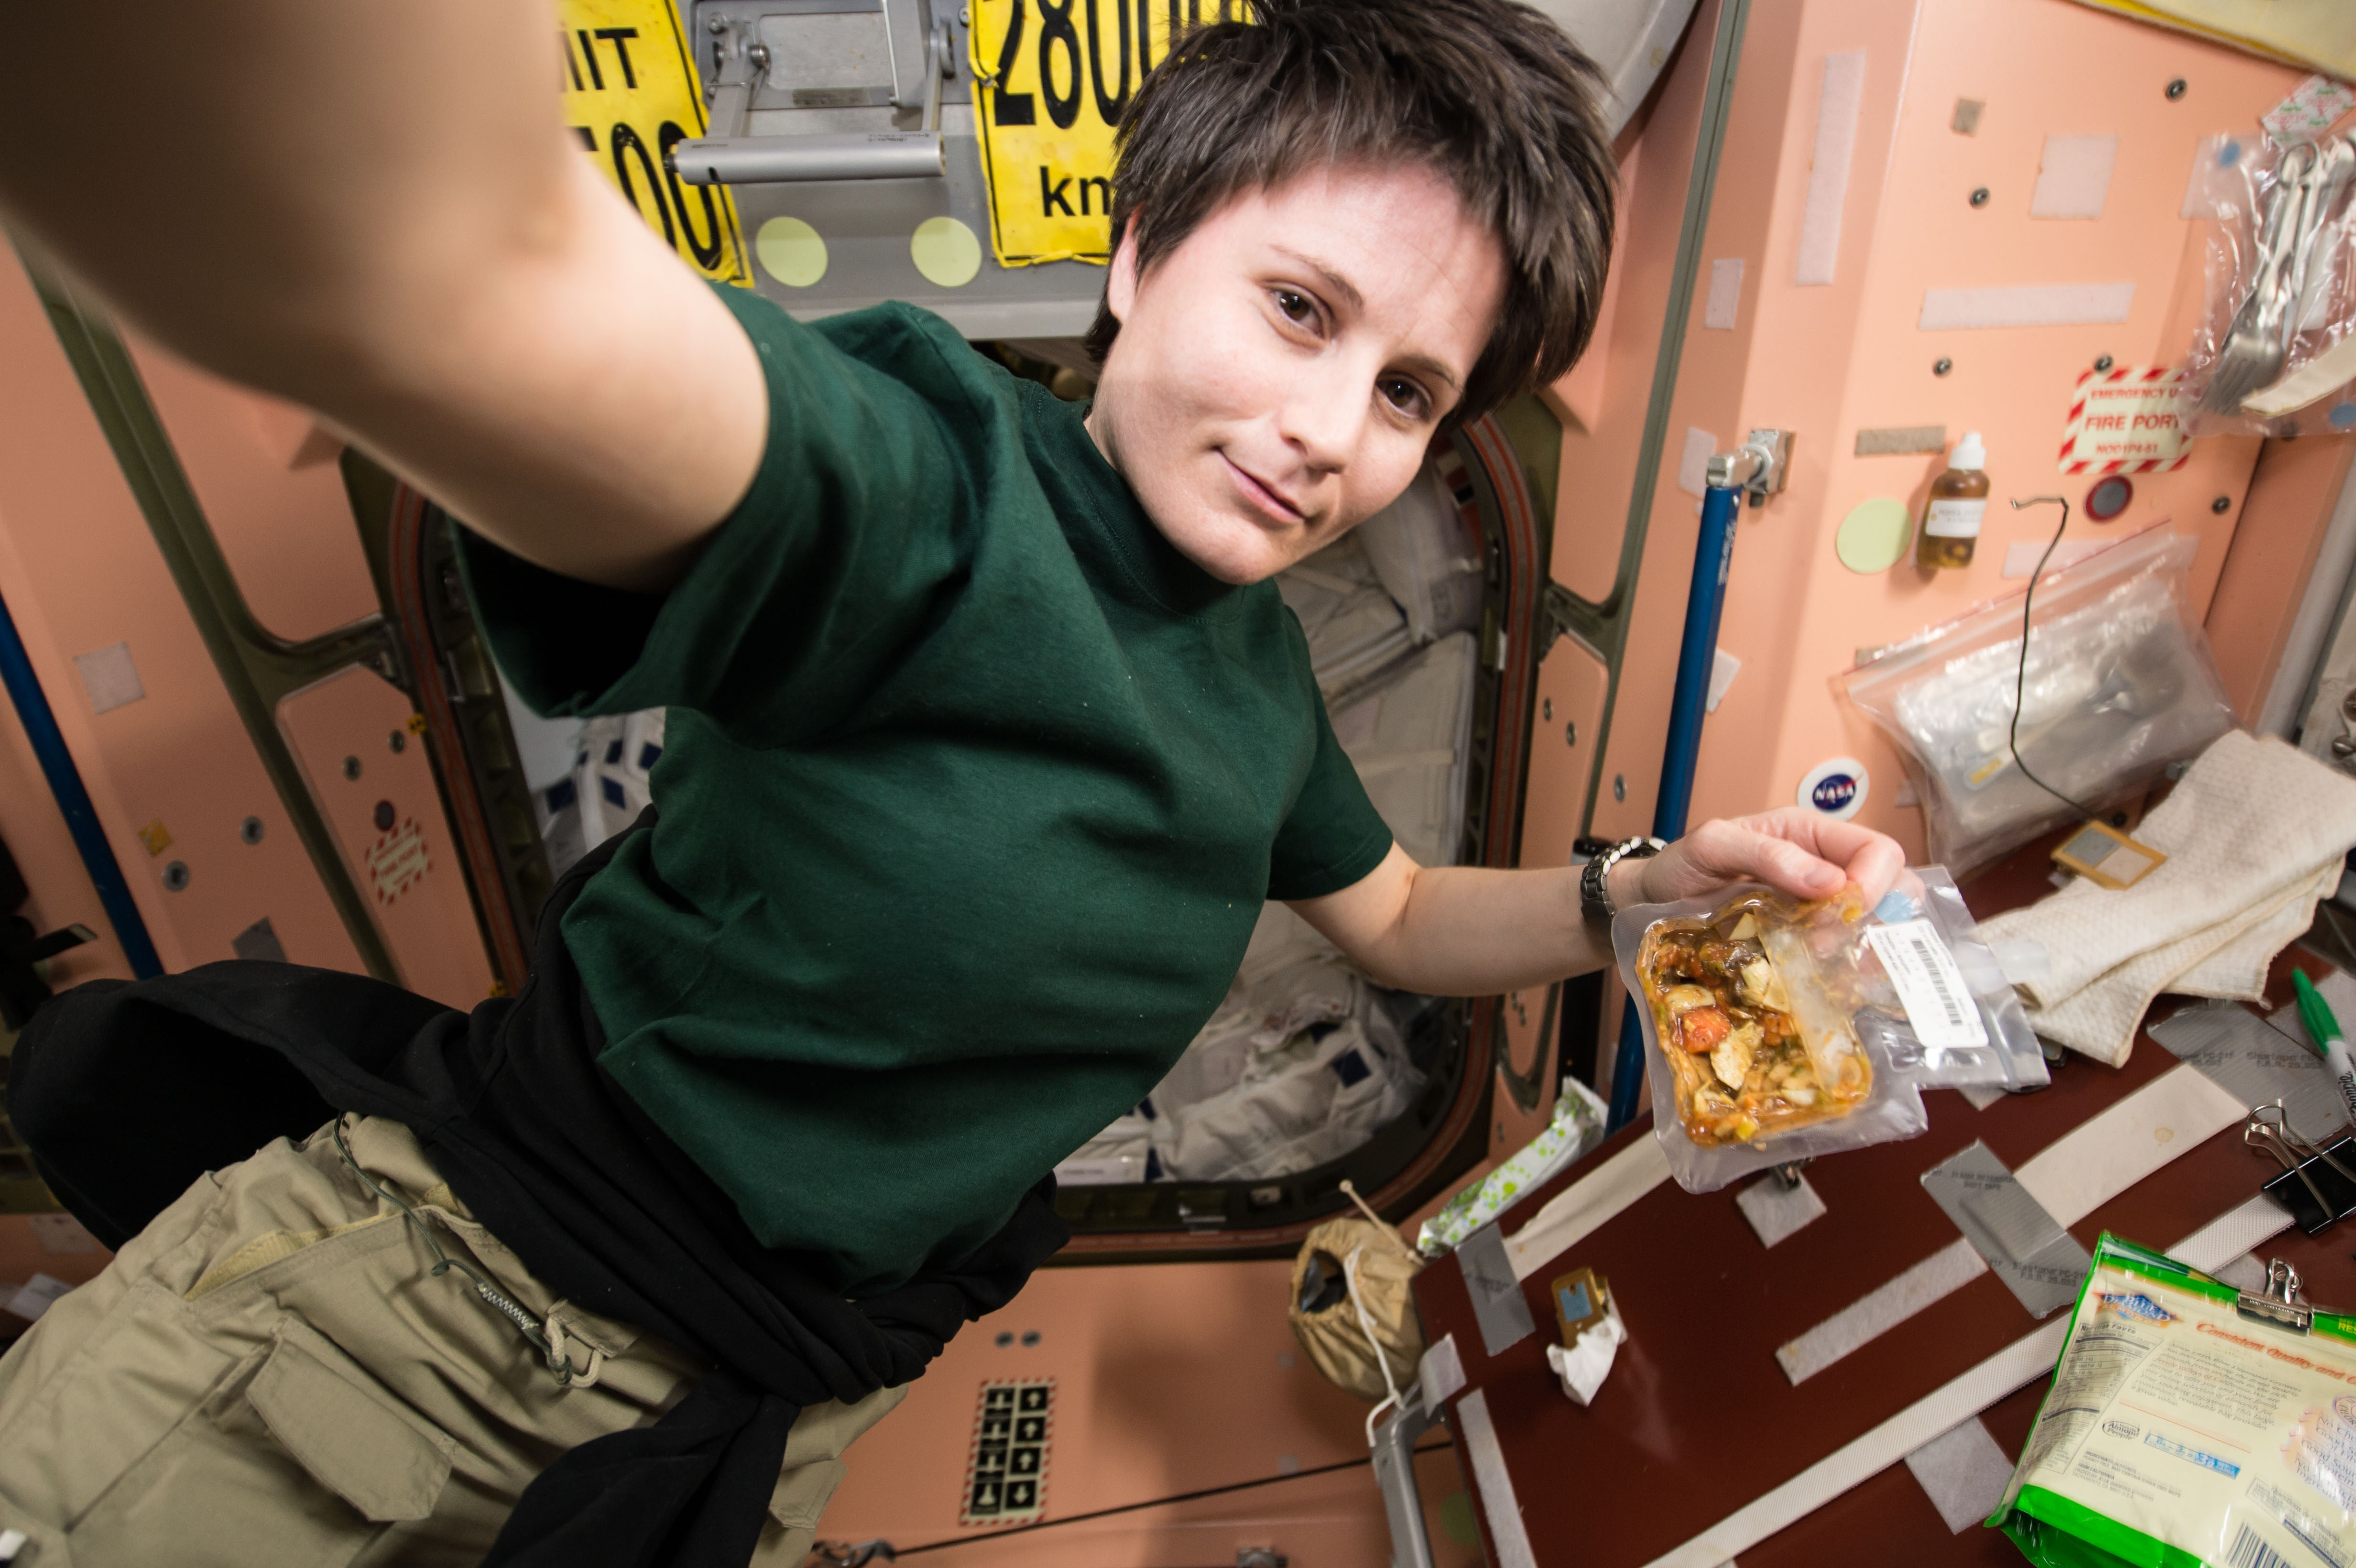 Jnimon – A Lab Aloft International Space Station Research